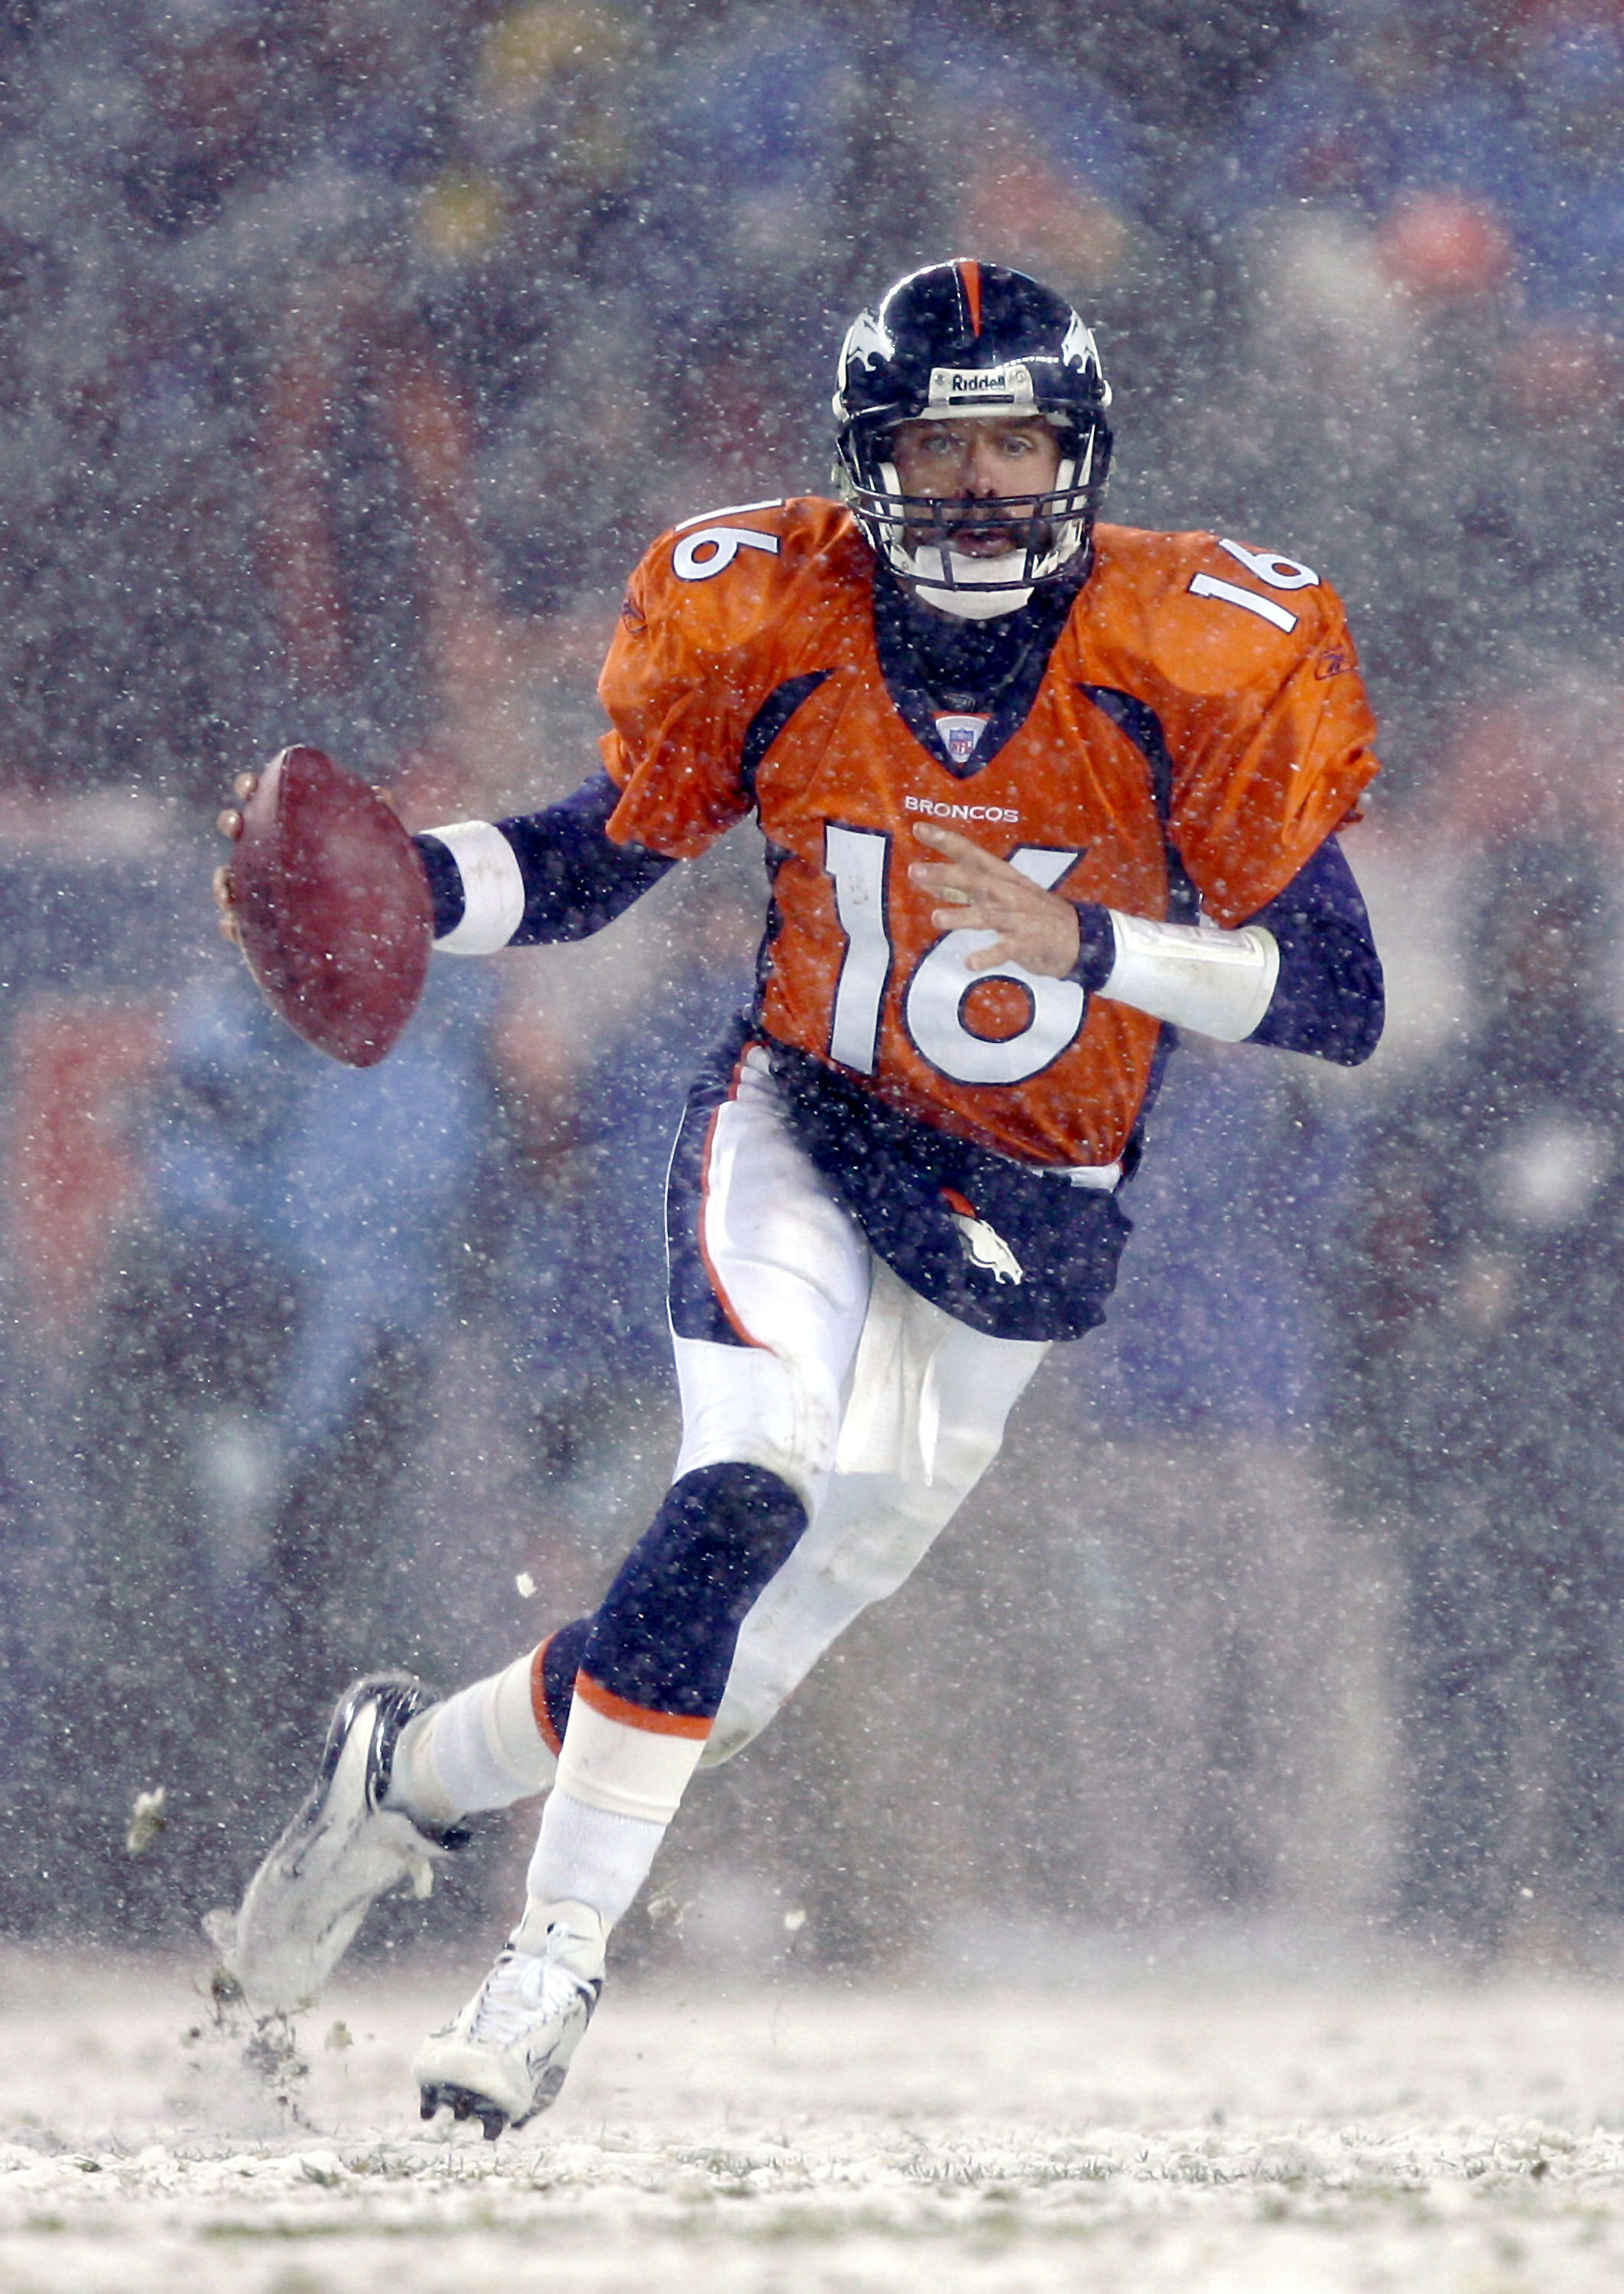 Jake Plummer in 2004 (credit: Brian Bahr/Getty Images)